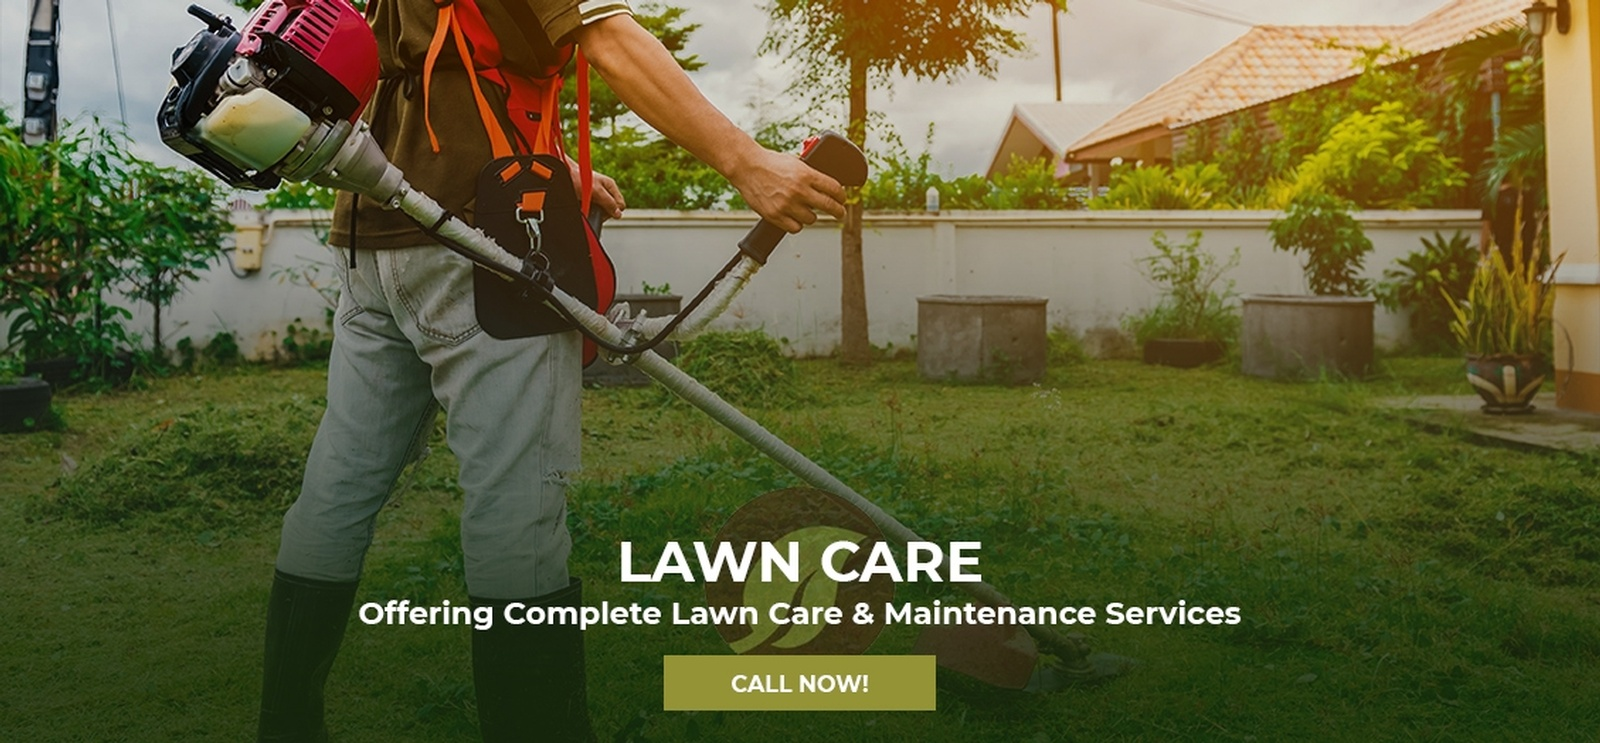 Complete Lawn Care & Maintenance Services